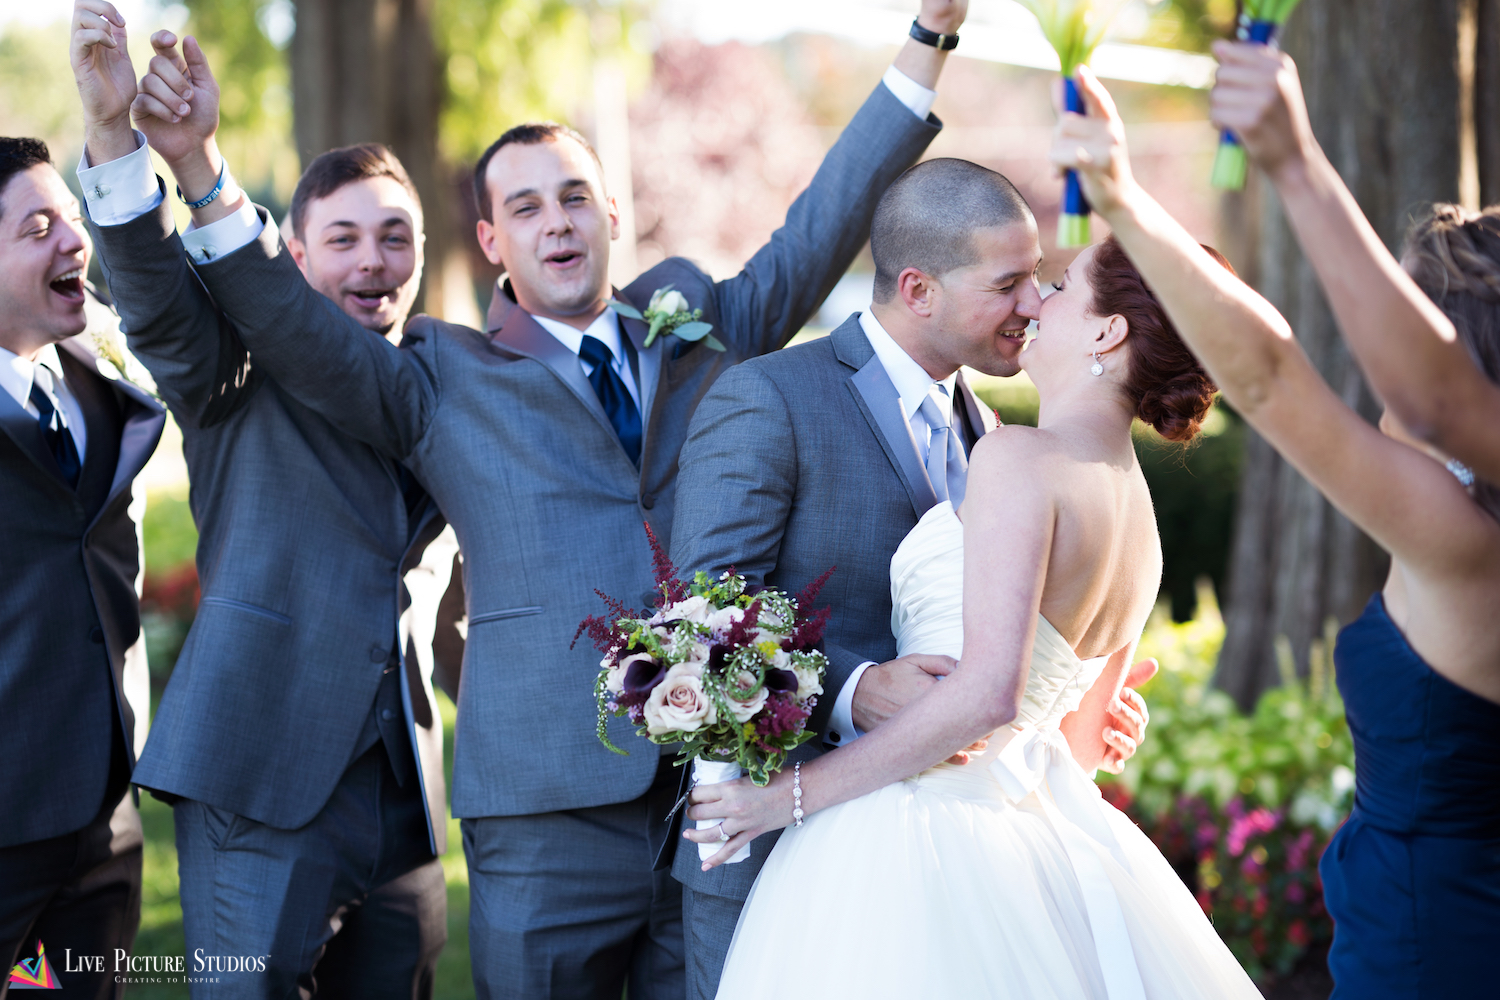 3 Ideas From Nj Wedding Photography Pros For Having A Small Wedding